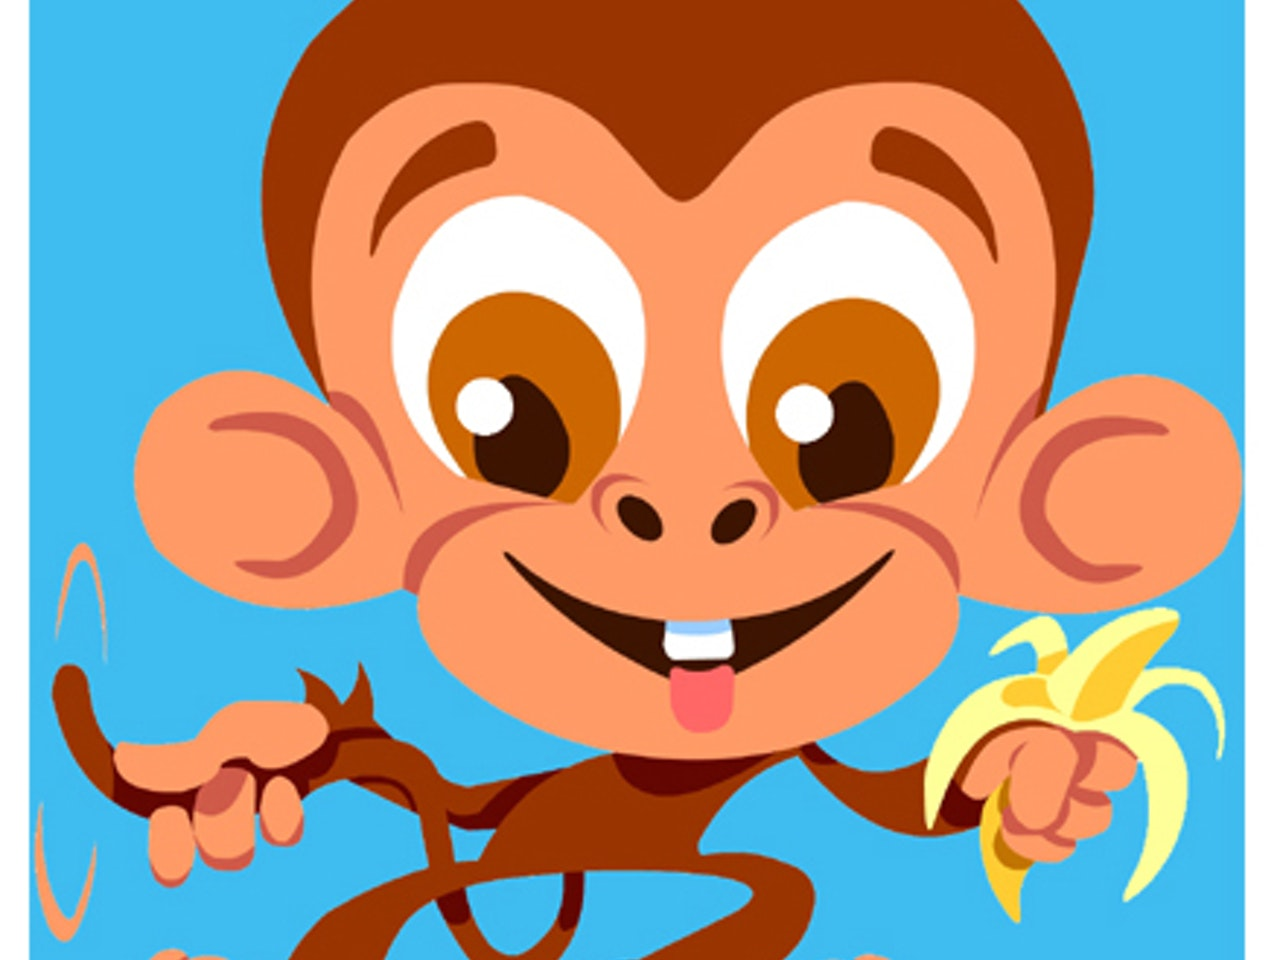 Cool friendly funny Funky pre school Happy manga anime childrens cartoon comic  cheeky monkey